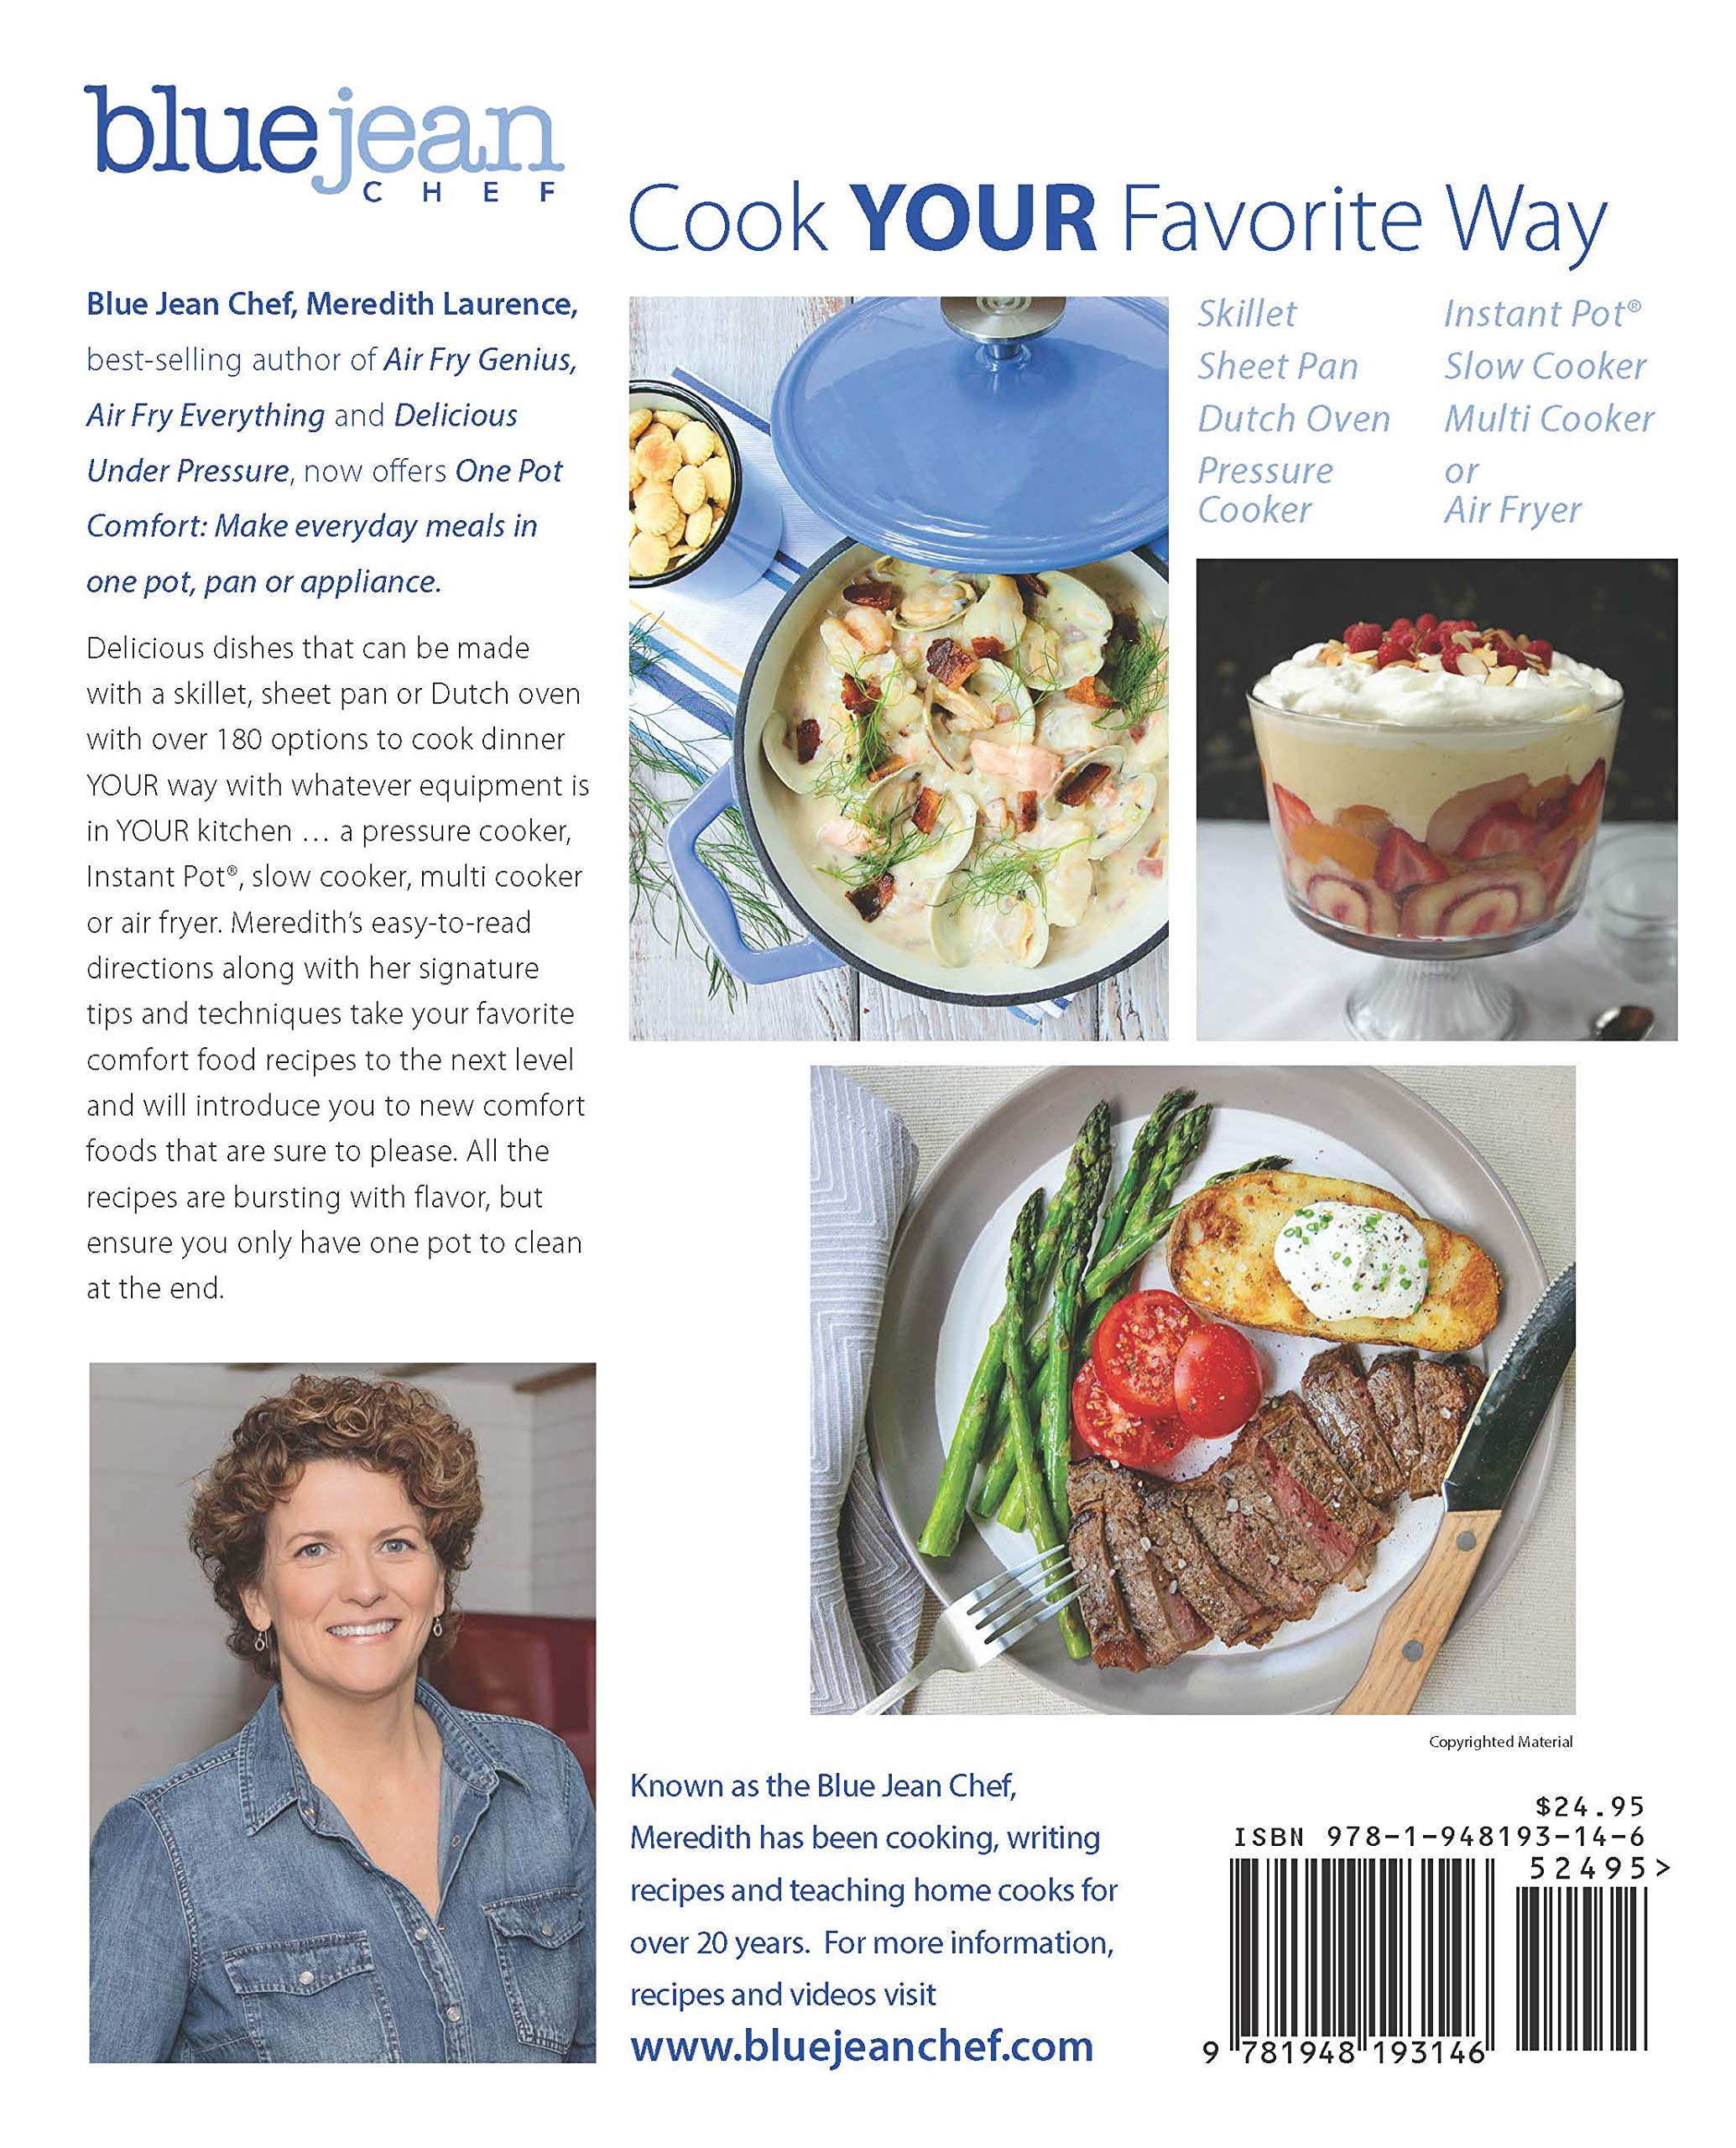 One Pot Comfort: Make Everyday Meals in One Pot, Pan or Appliance (The Blue  Jean Chef): Meredith Laurence: 9781948193146: Amazon.com: Books